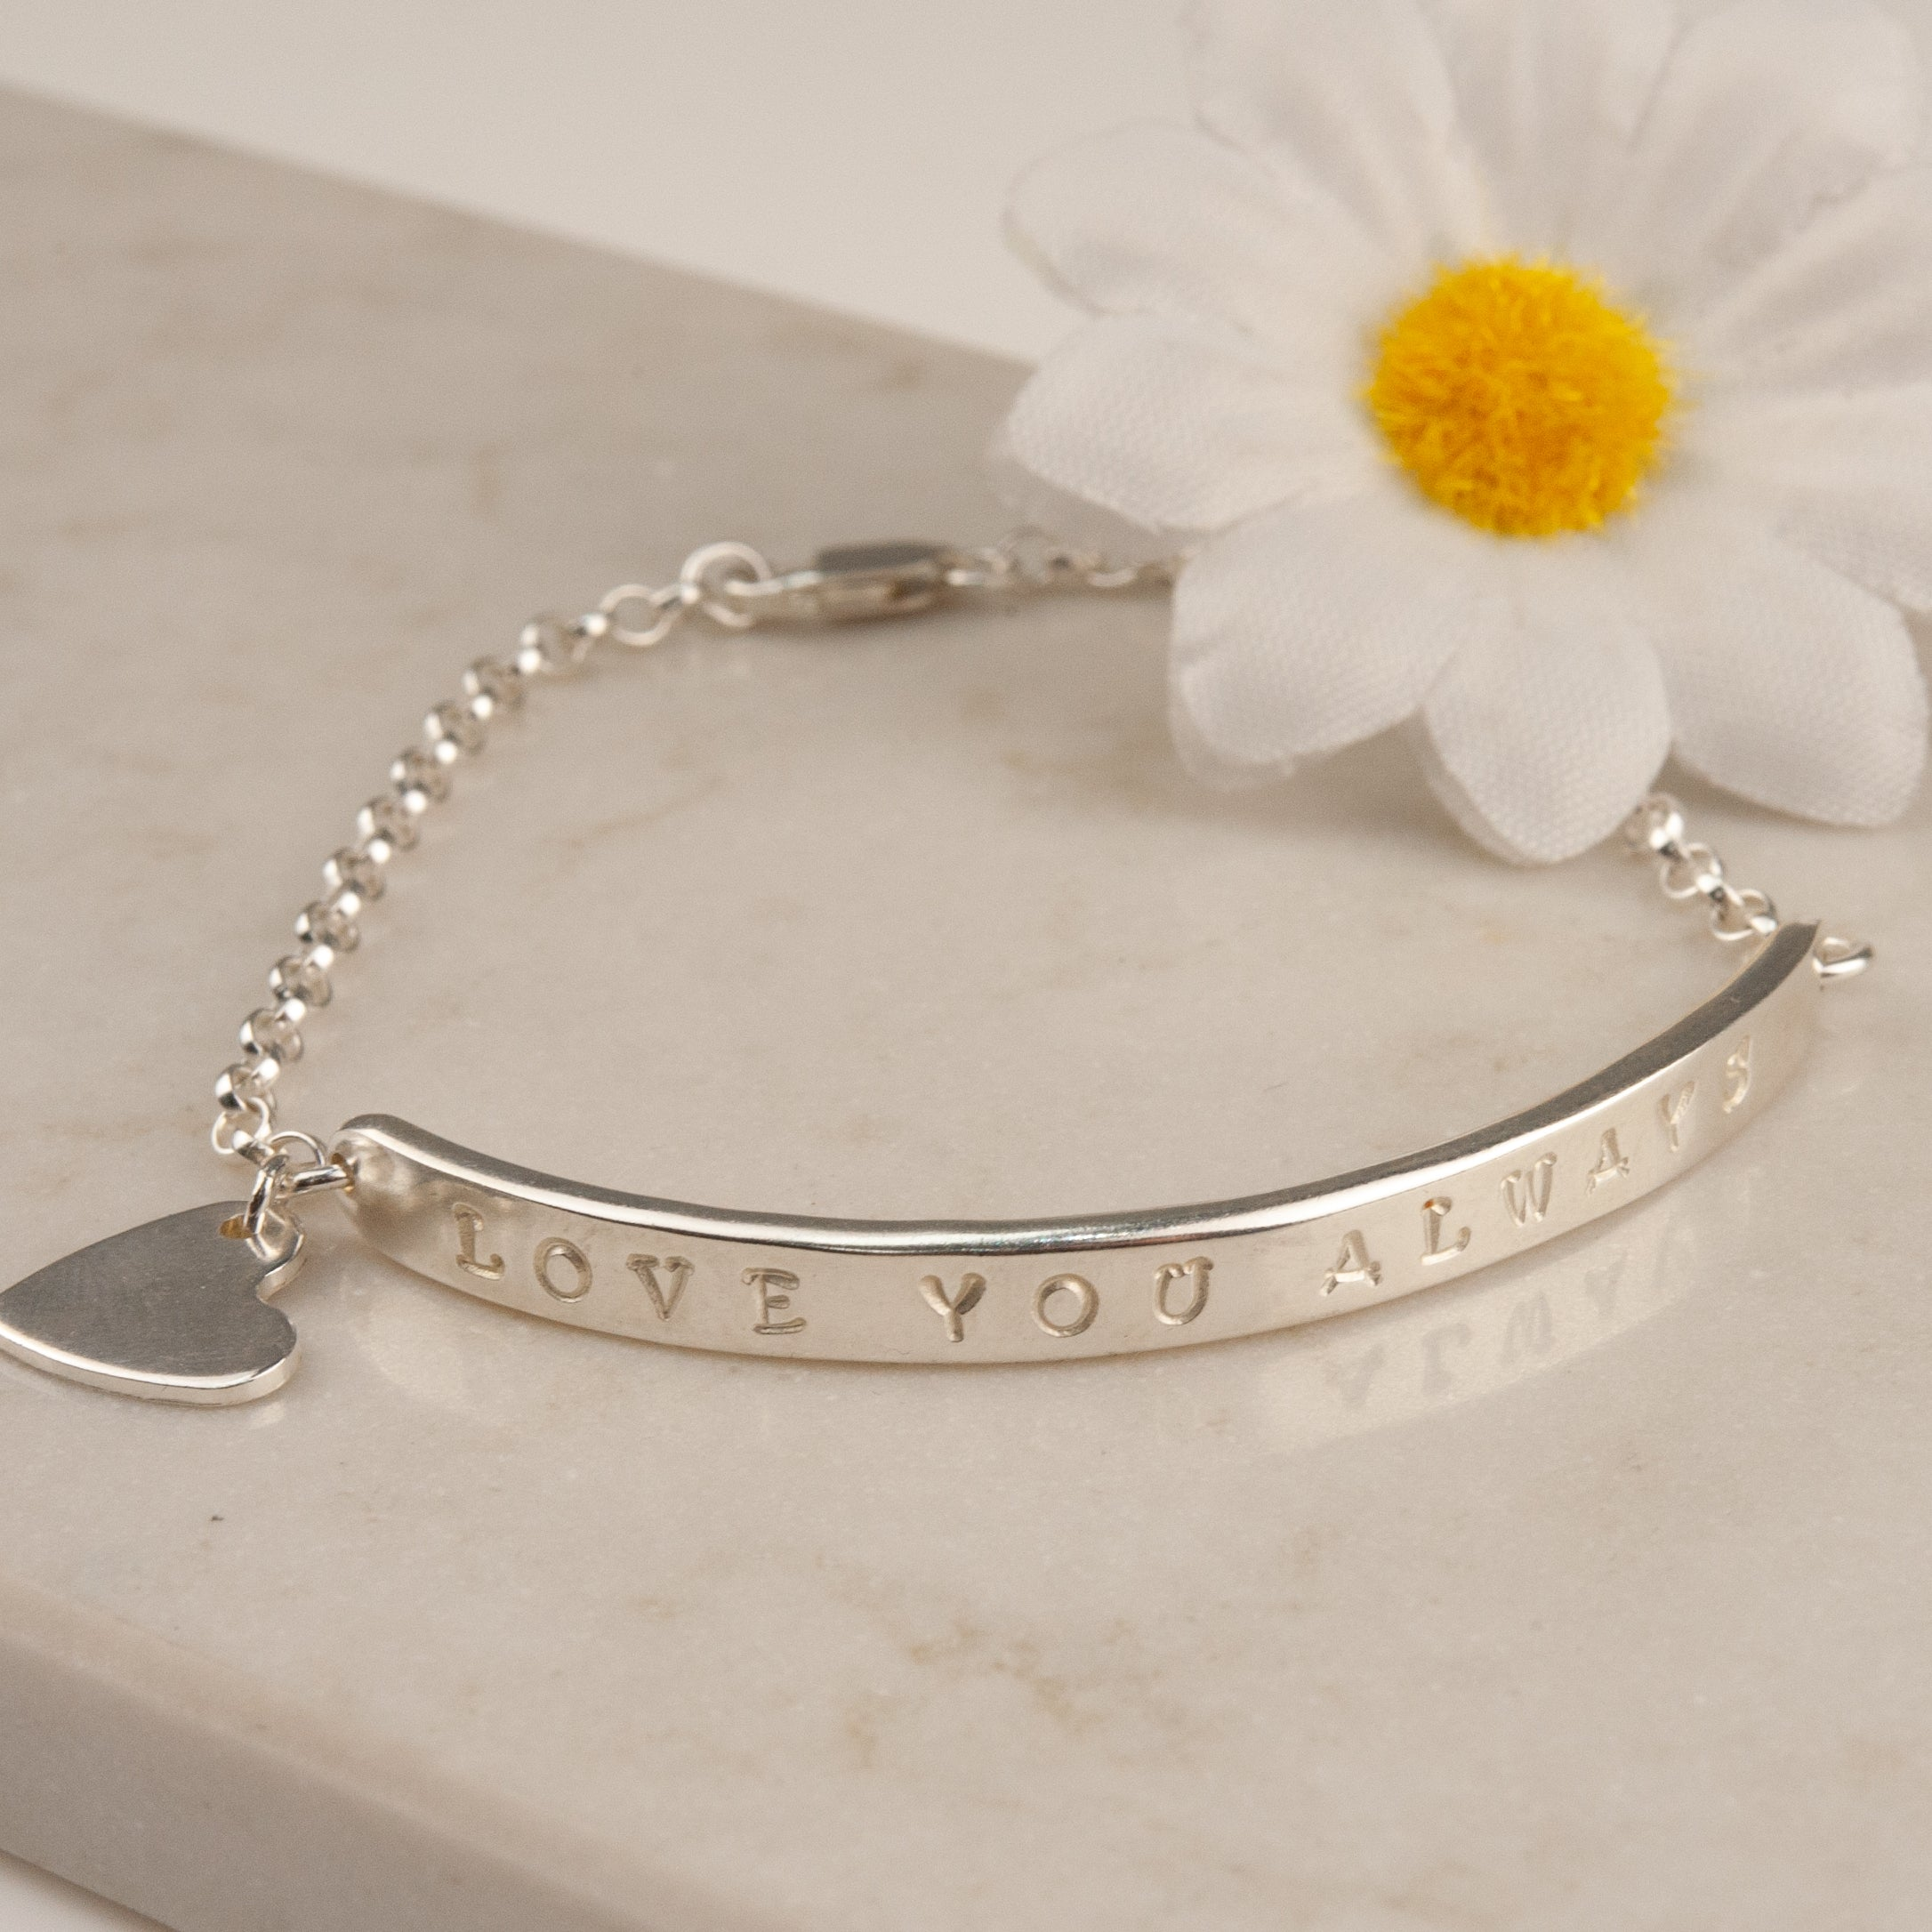 Belle and Bee Personalised Silver Bar Bracelet